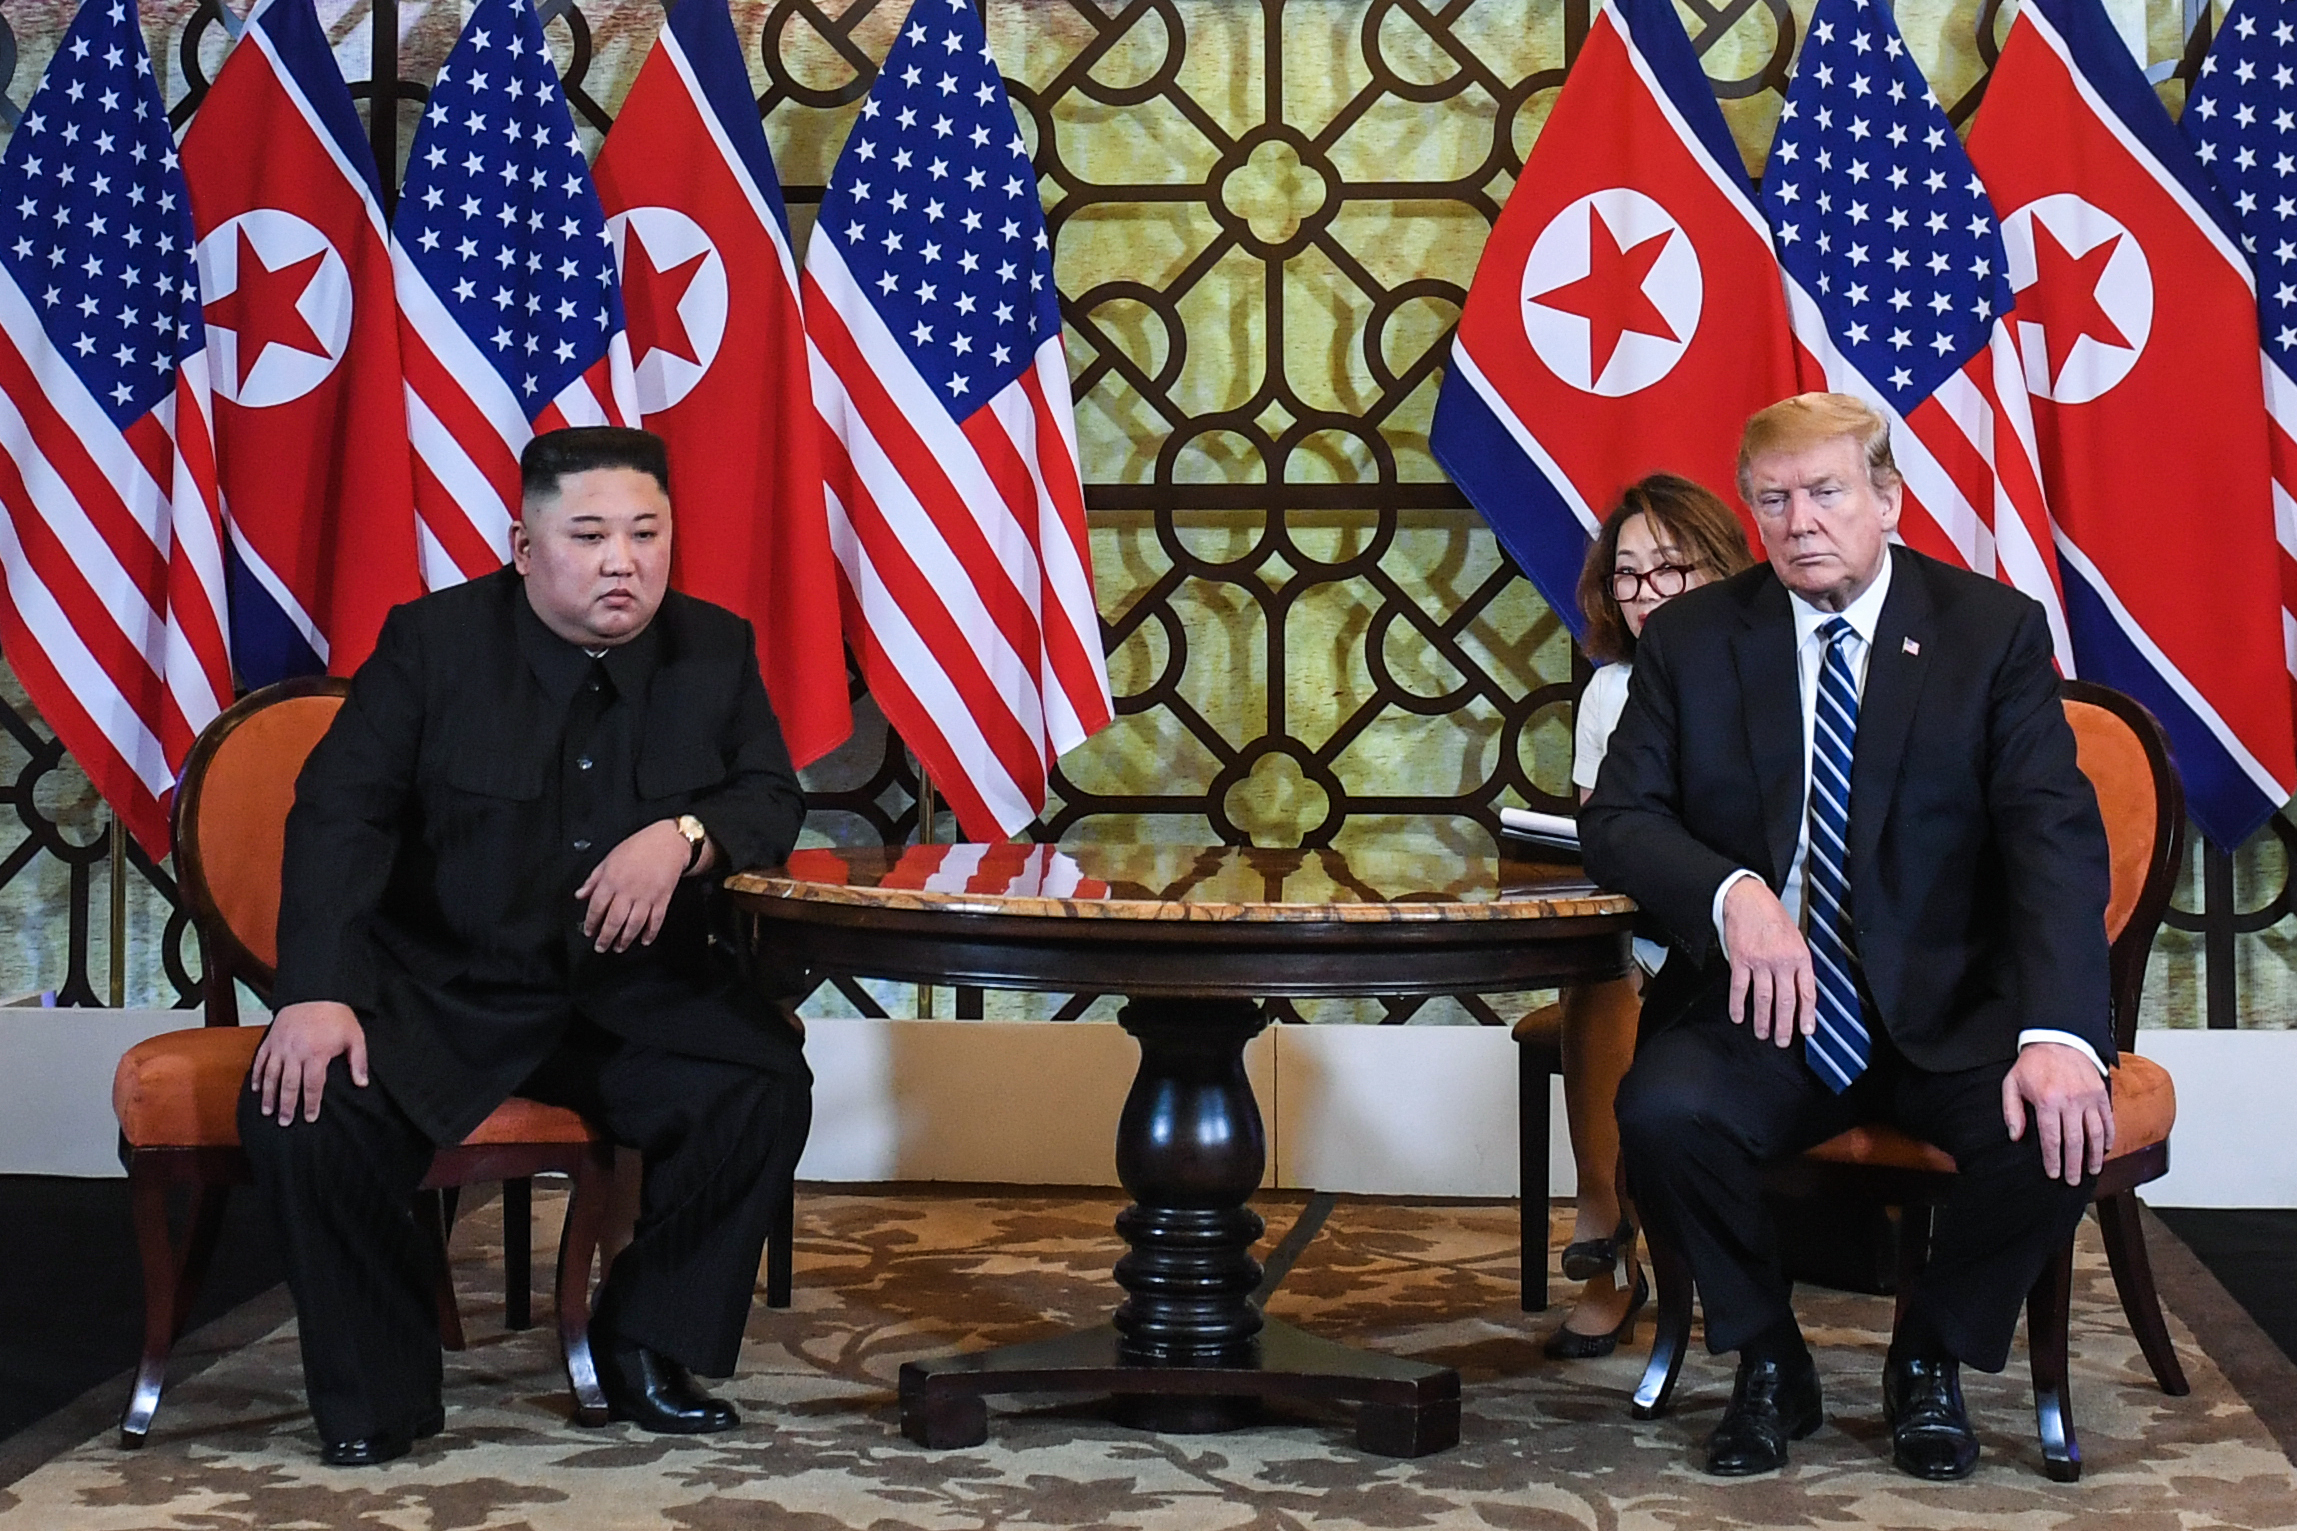 President Donald Trump (R) and North Korea's leader Kim Jong Un hold a meeting during the second US-North Korea summit at the Sofitel Legend Metropole hotel in Hanoi on February 28, 2019. (SAUL LOEB/AFP/Getty Images)